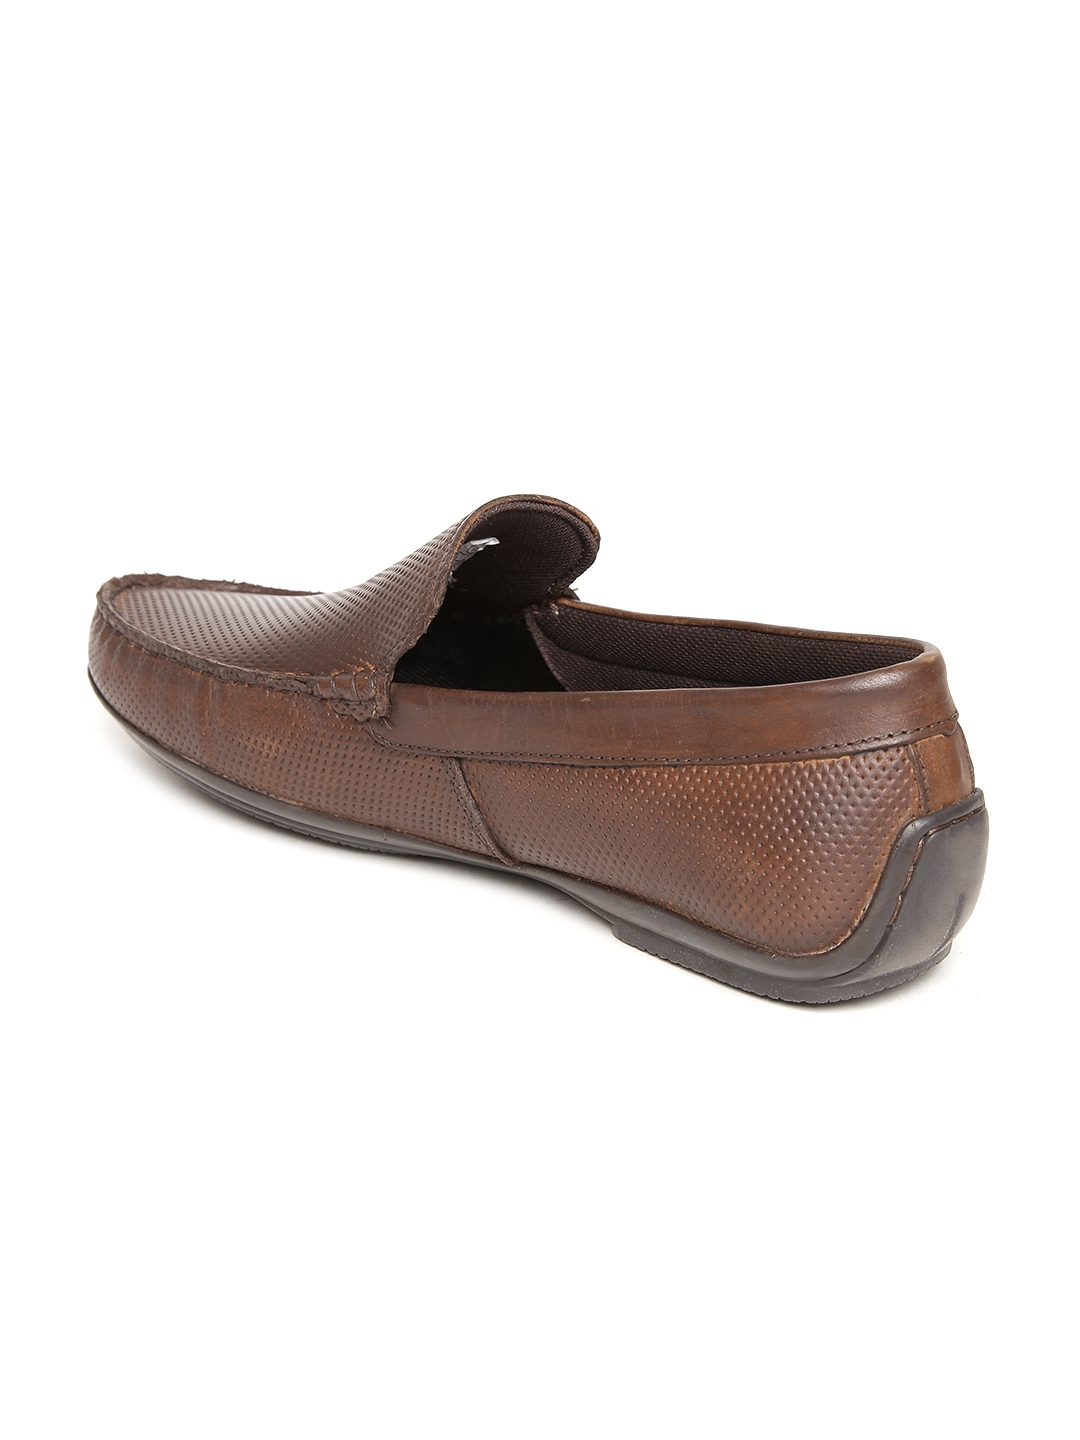 bd7dce8fb3 Buy Red Tape Men Brown Textured Leather Loafers - Casual Shoes for ...